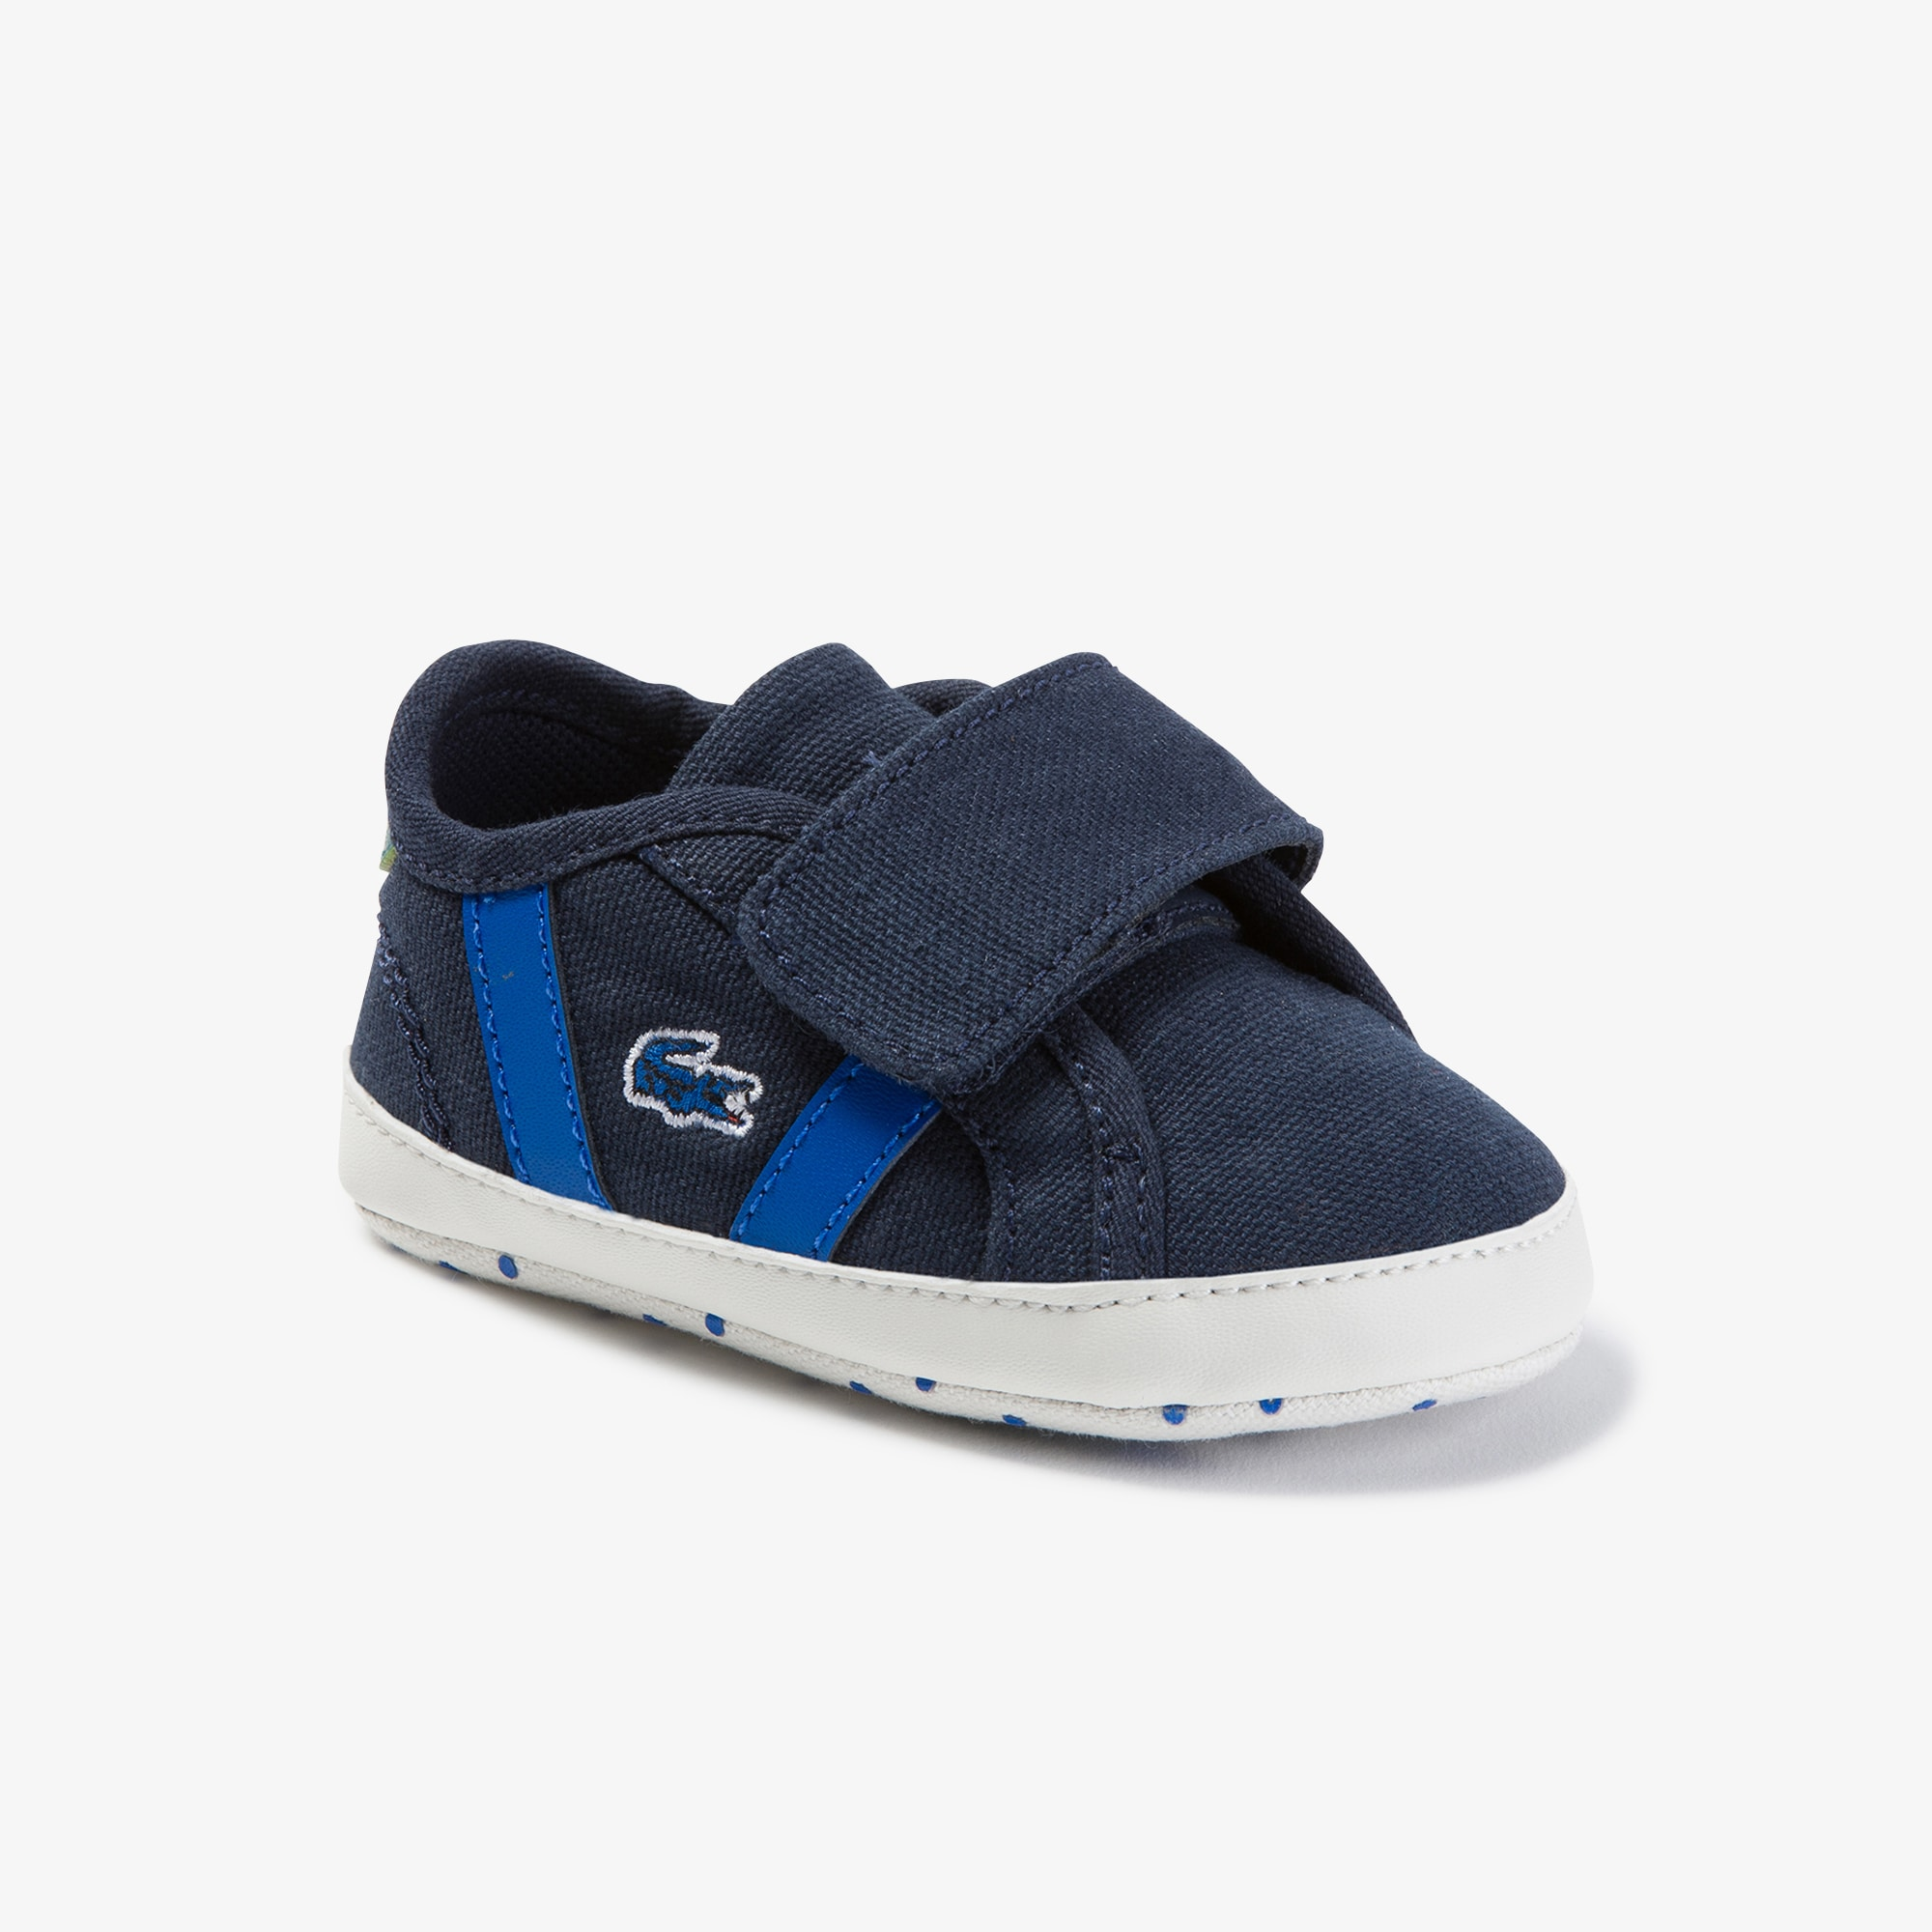 Babies' Sideline Crib Canvas Trainers